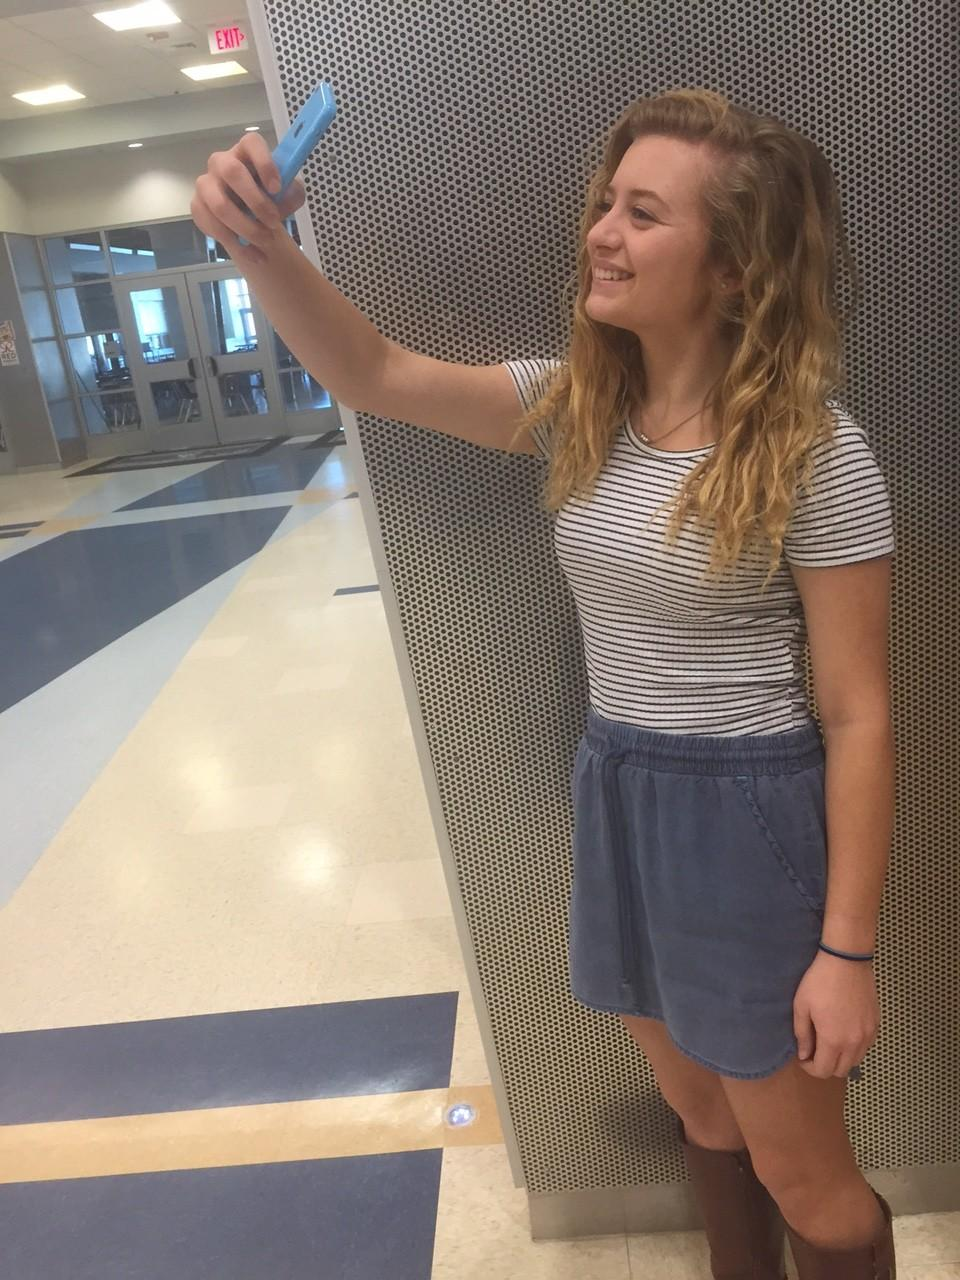 Junior Carolyn Bradley uses her iPhone to take a selfie and post it on her Snapchat story